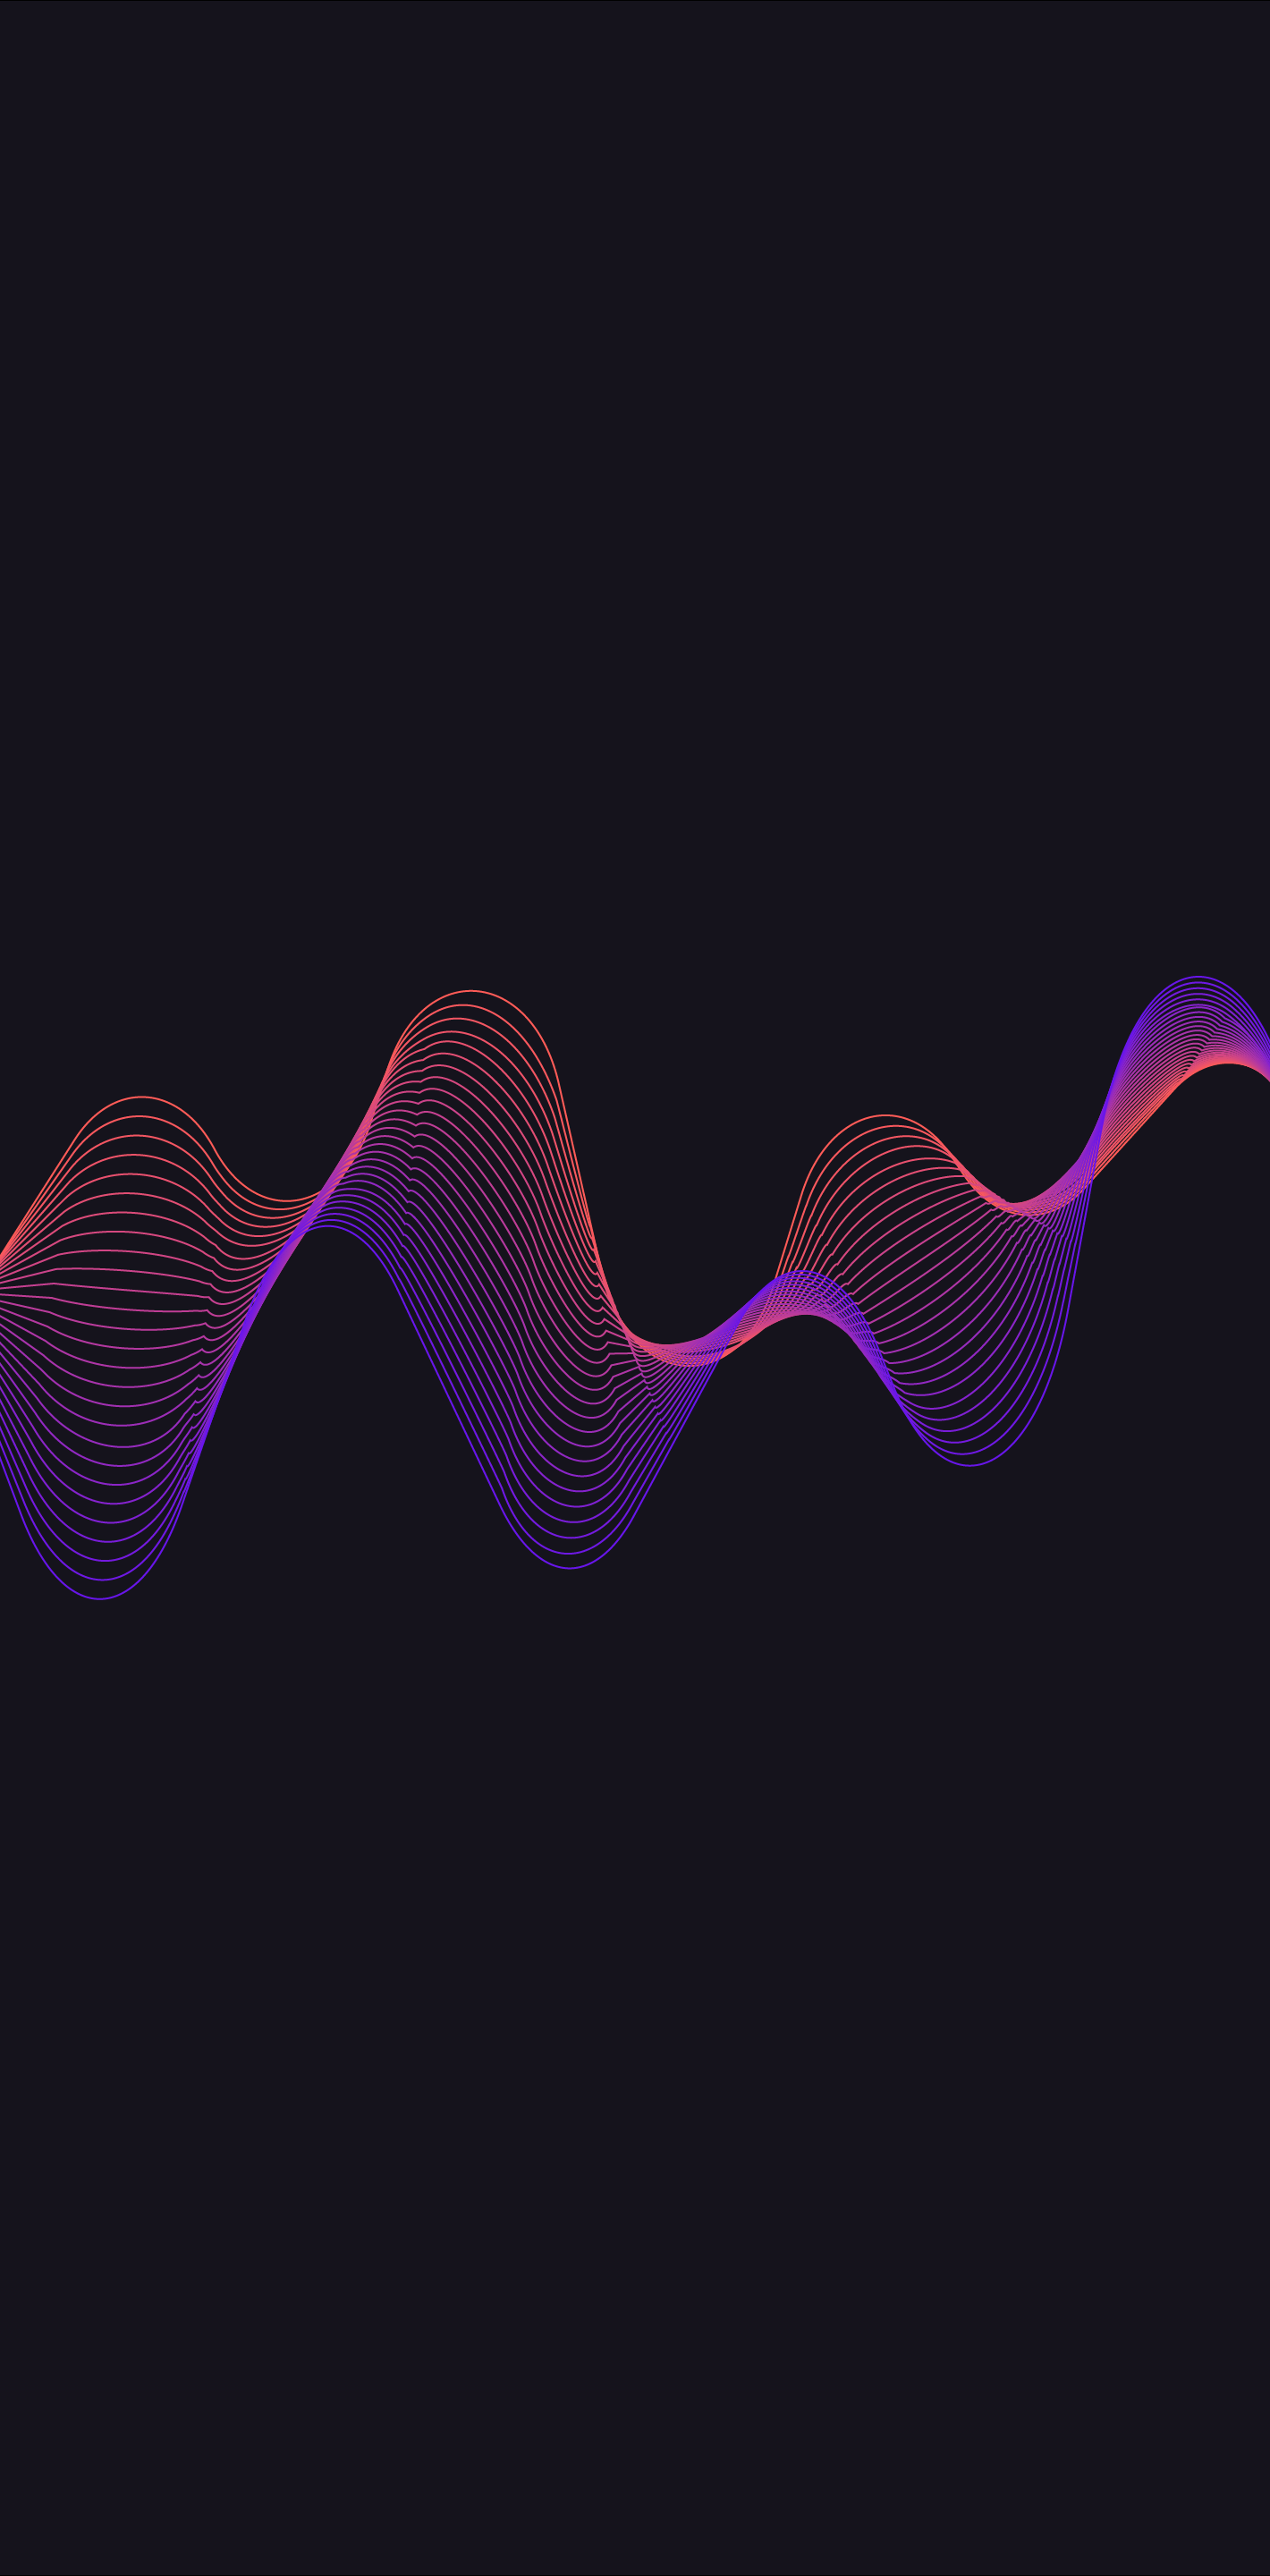 Waveform wallpaper sreeragag7 iDownloadBlog 0